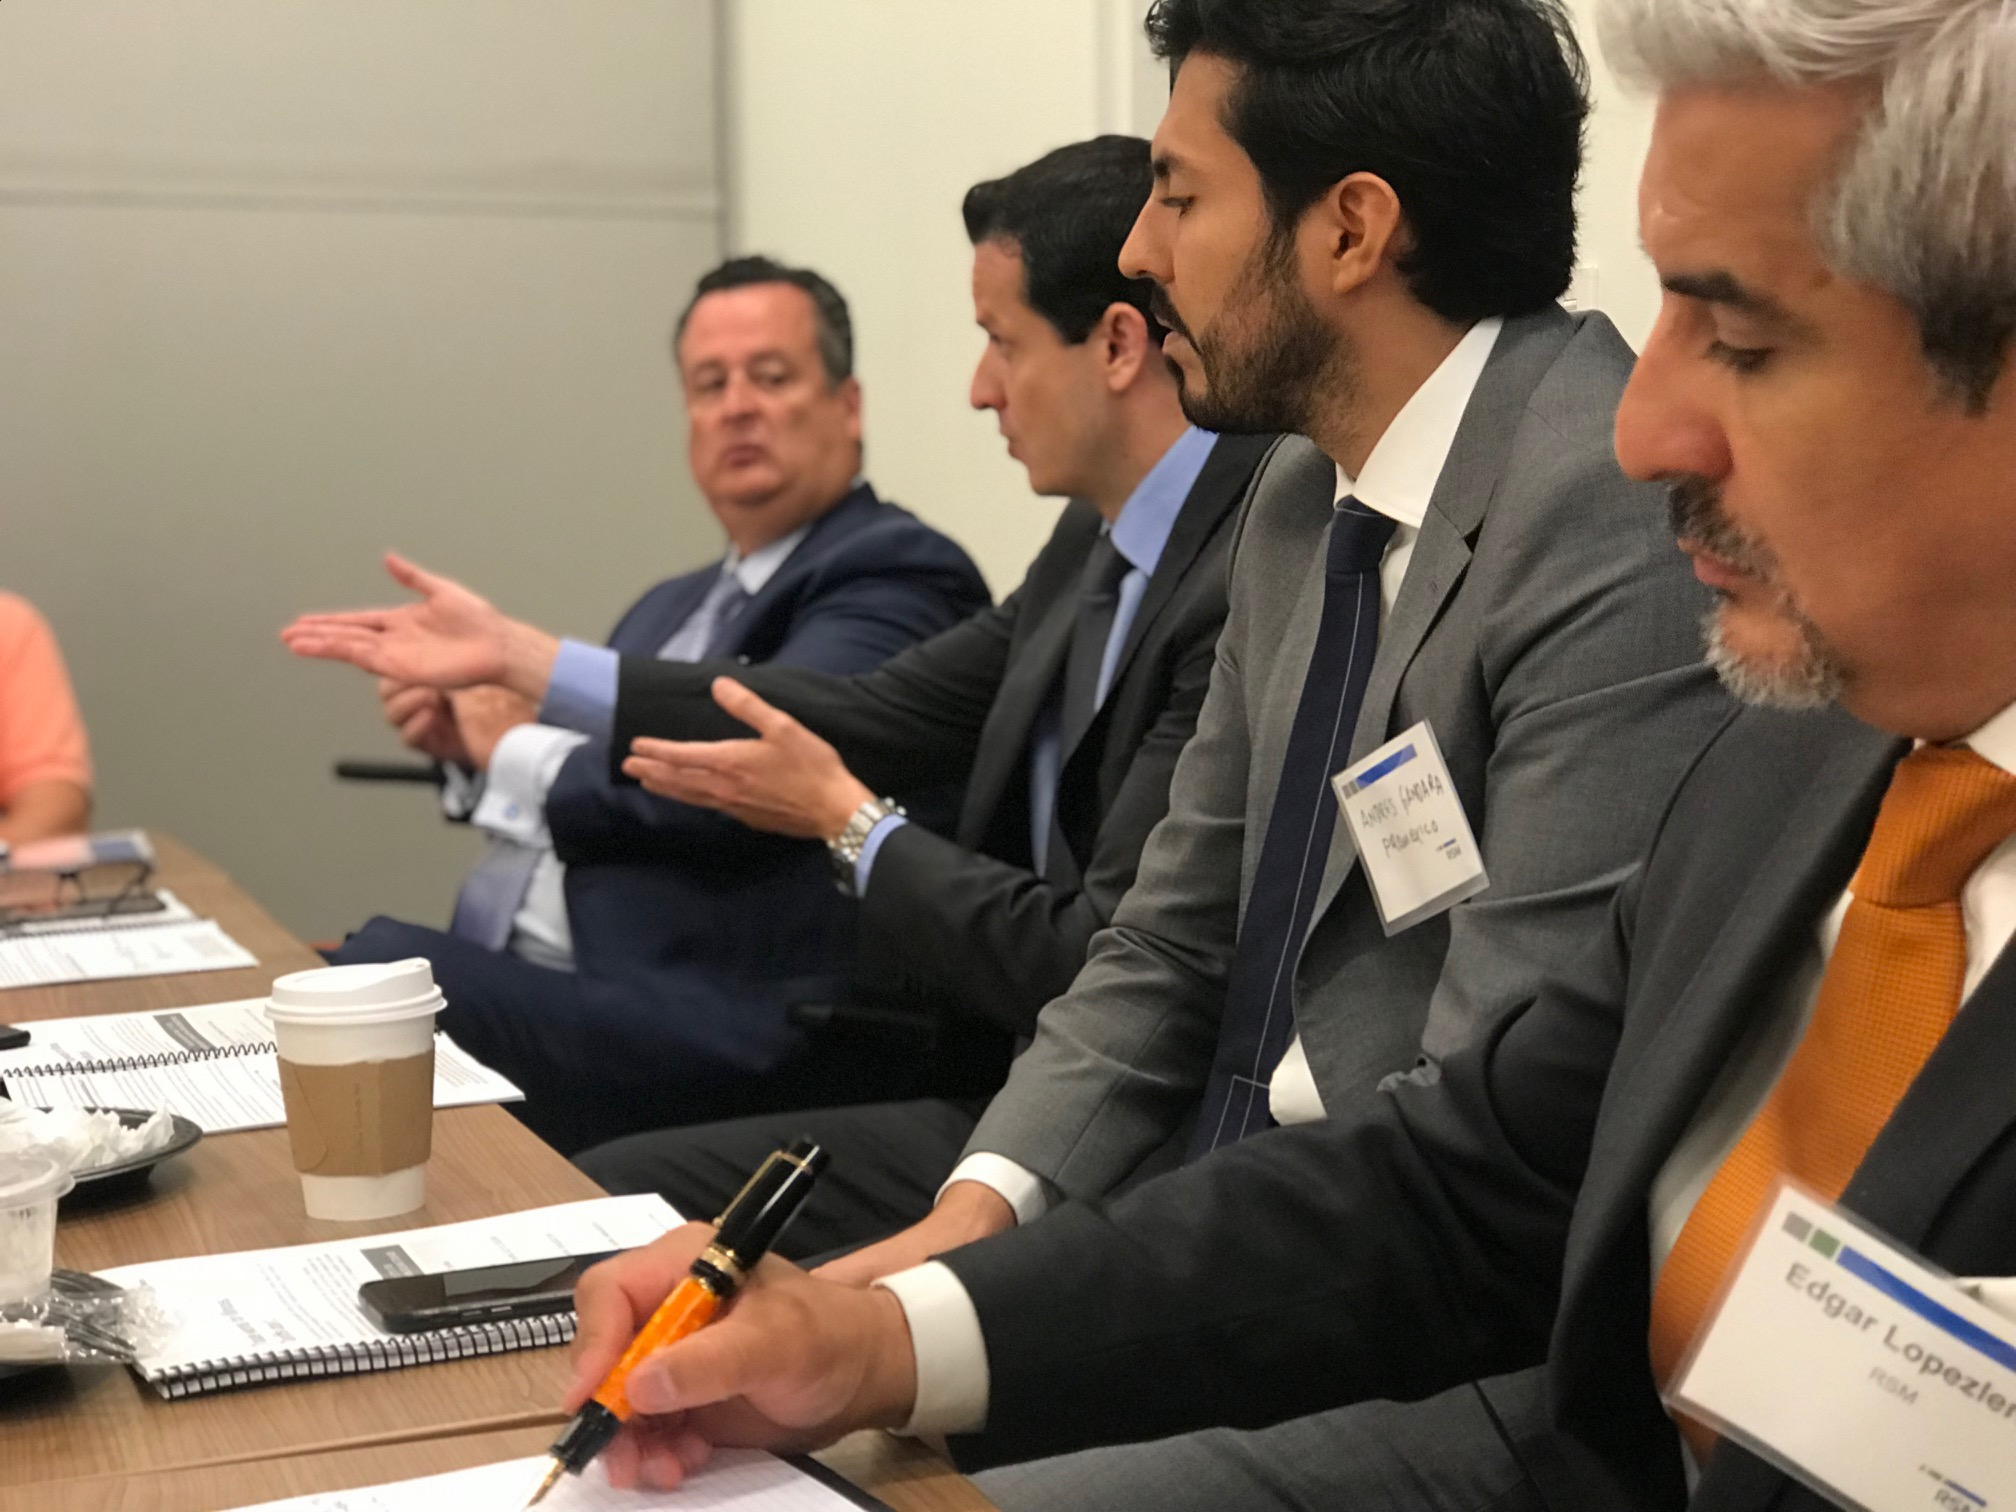 Martin Caro (Center), ProMexico Trade Commissioner in Chicago, briefs the audience on the results of the recent elections in Mexico